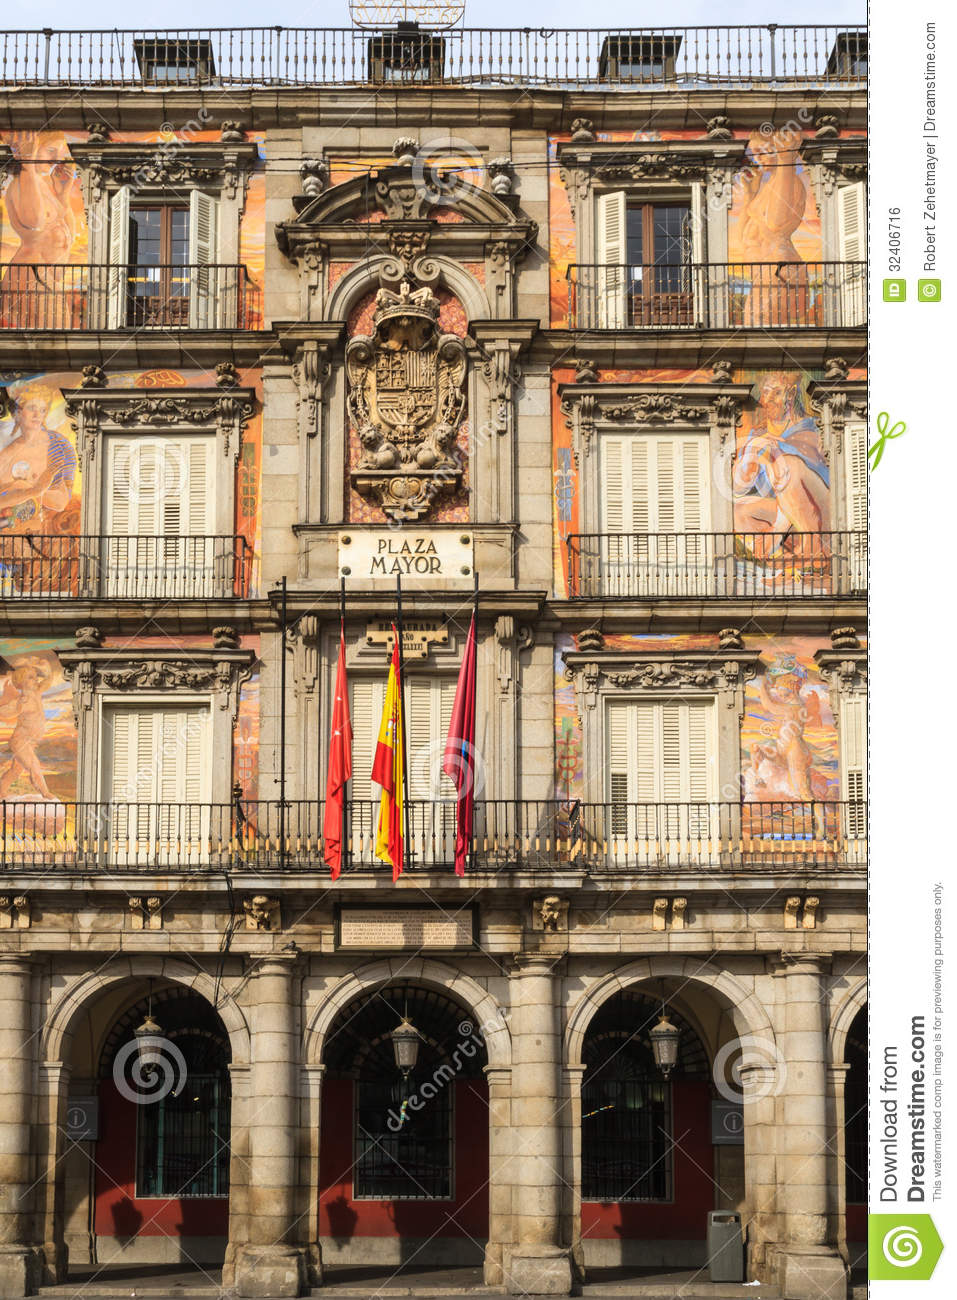 Madrid plaza mayor facade of casa de la panaderia royalty free stock image image 32406716 - Casa de la panaderia madrid ...